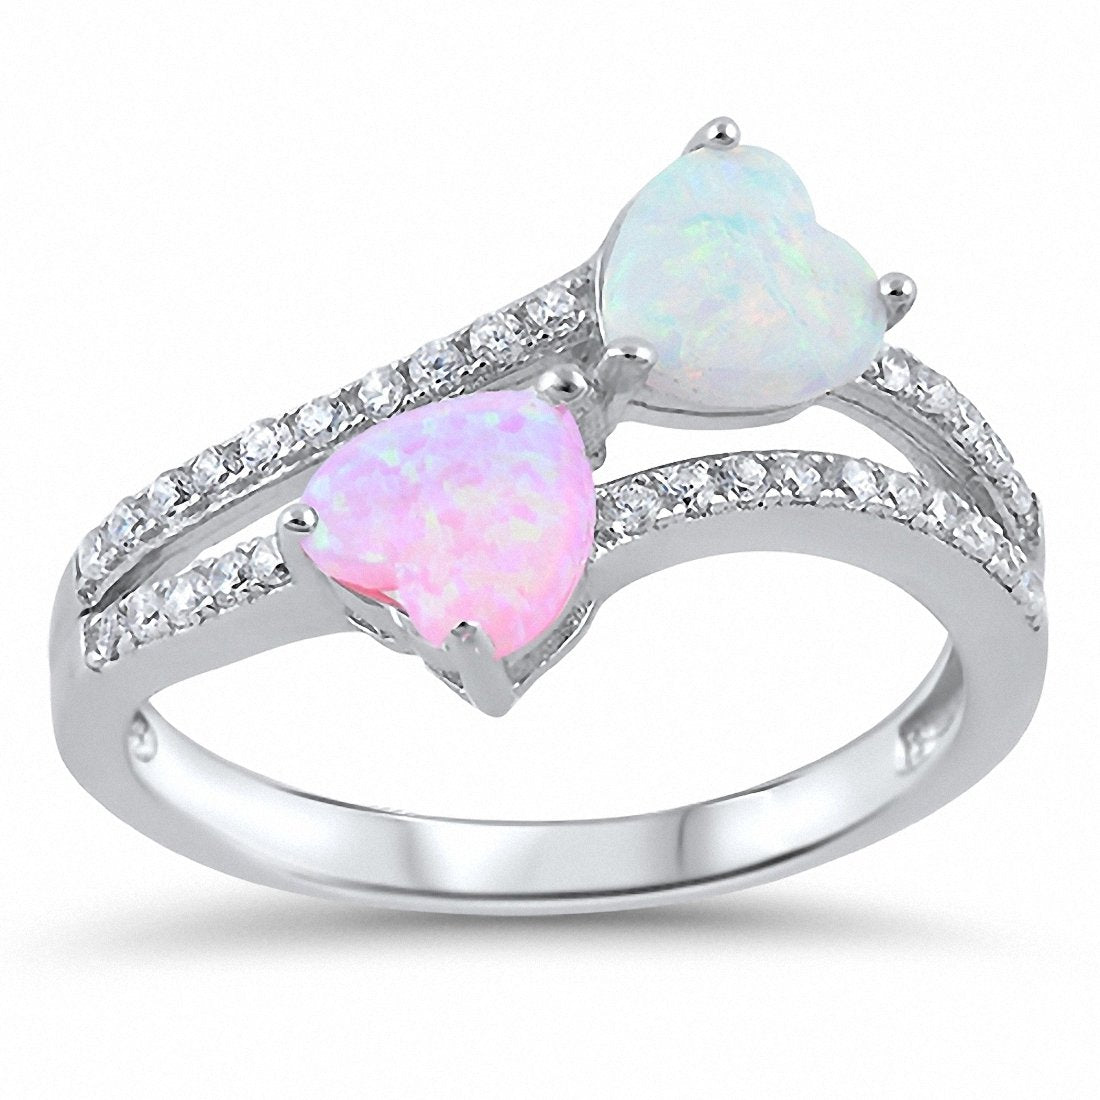 Double Heart Ring Heart Round Created Opal Cubic Zirconia 925 Sterling Silver Choose Color